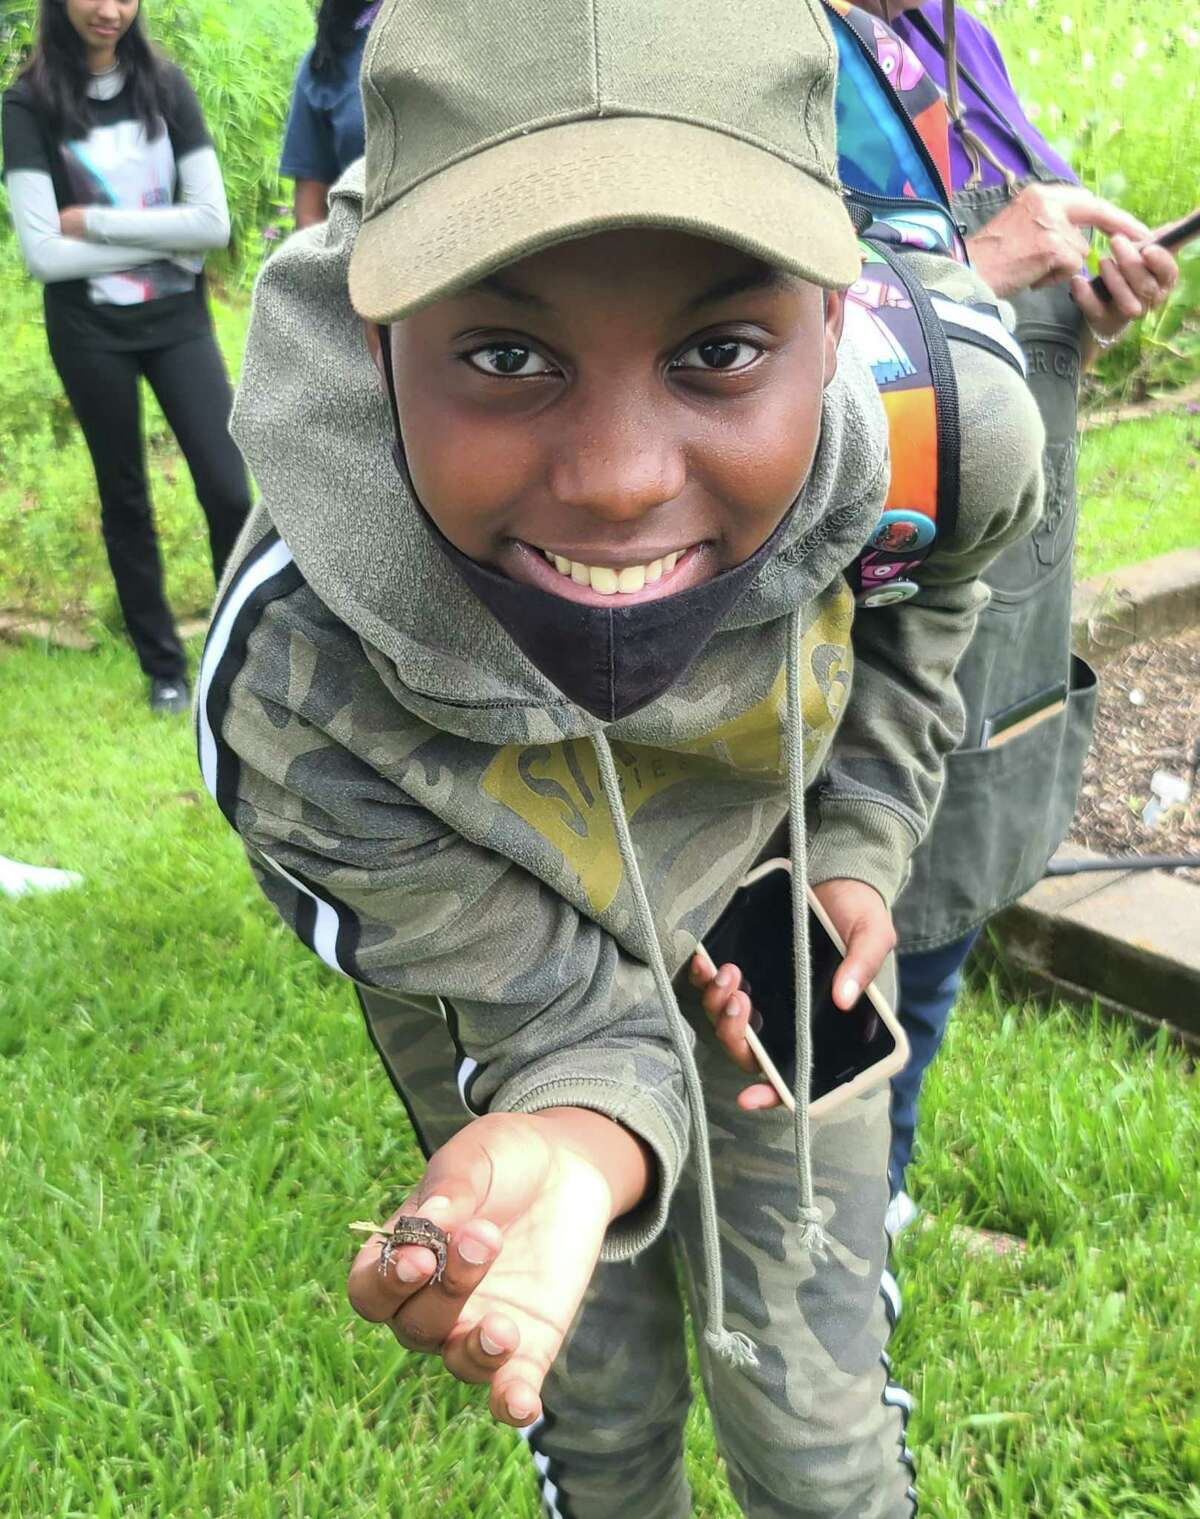 One of the students on the tour, Erin, made friends with the amphibians.